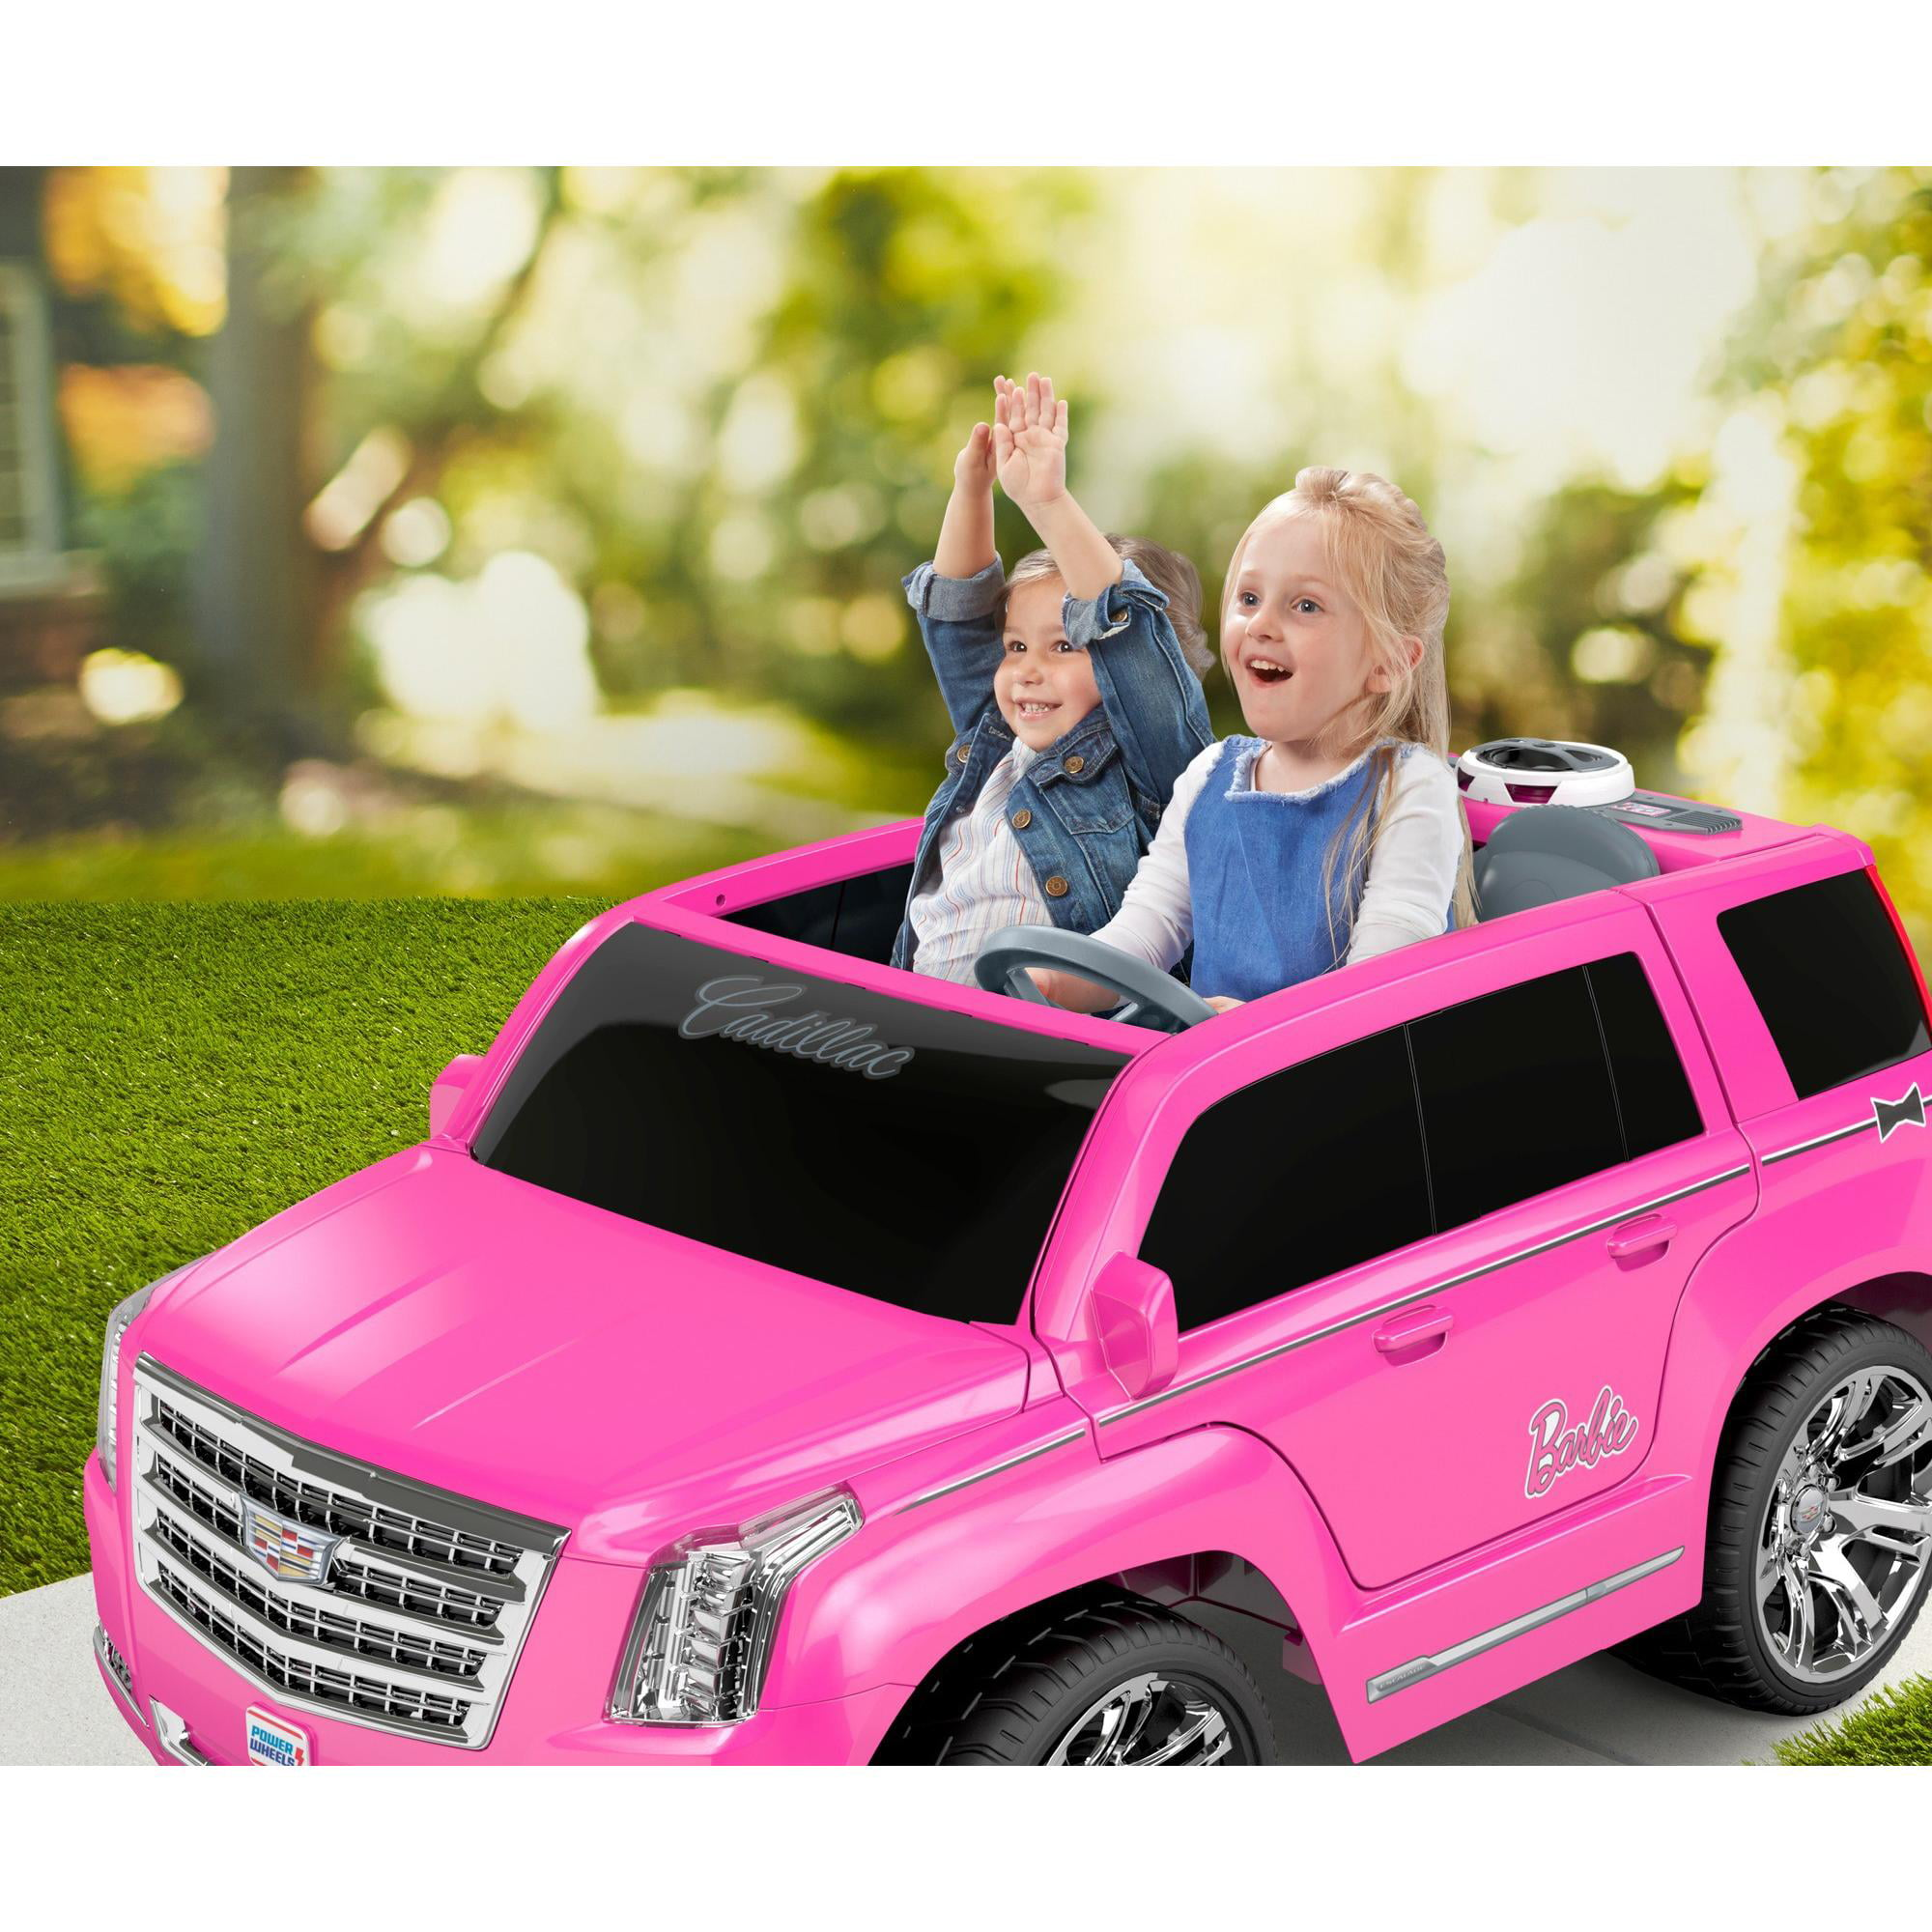 power wheels barbie cadillac escalade ride on vehicle pink walmart com walmart com power wheels barbie cadillac escalade ride on vehicle pink